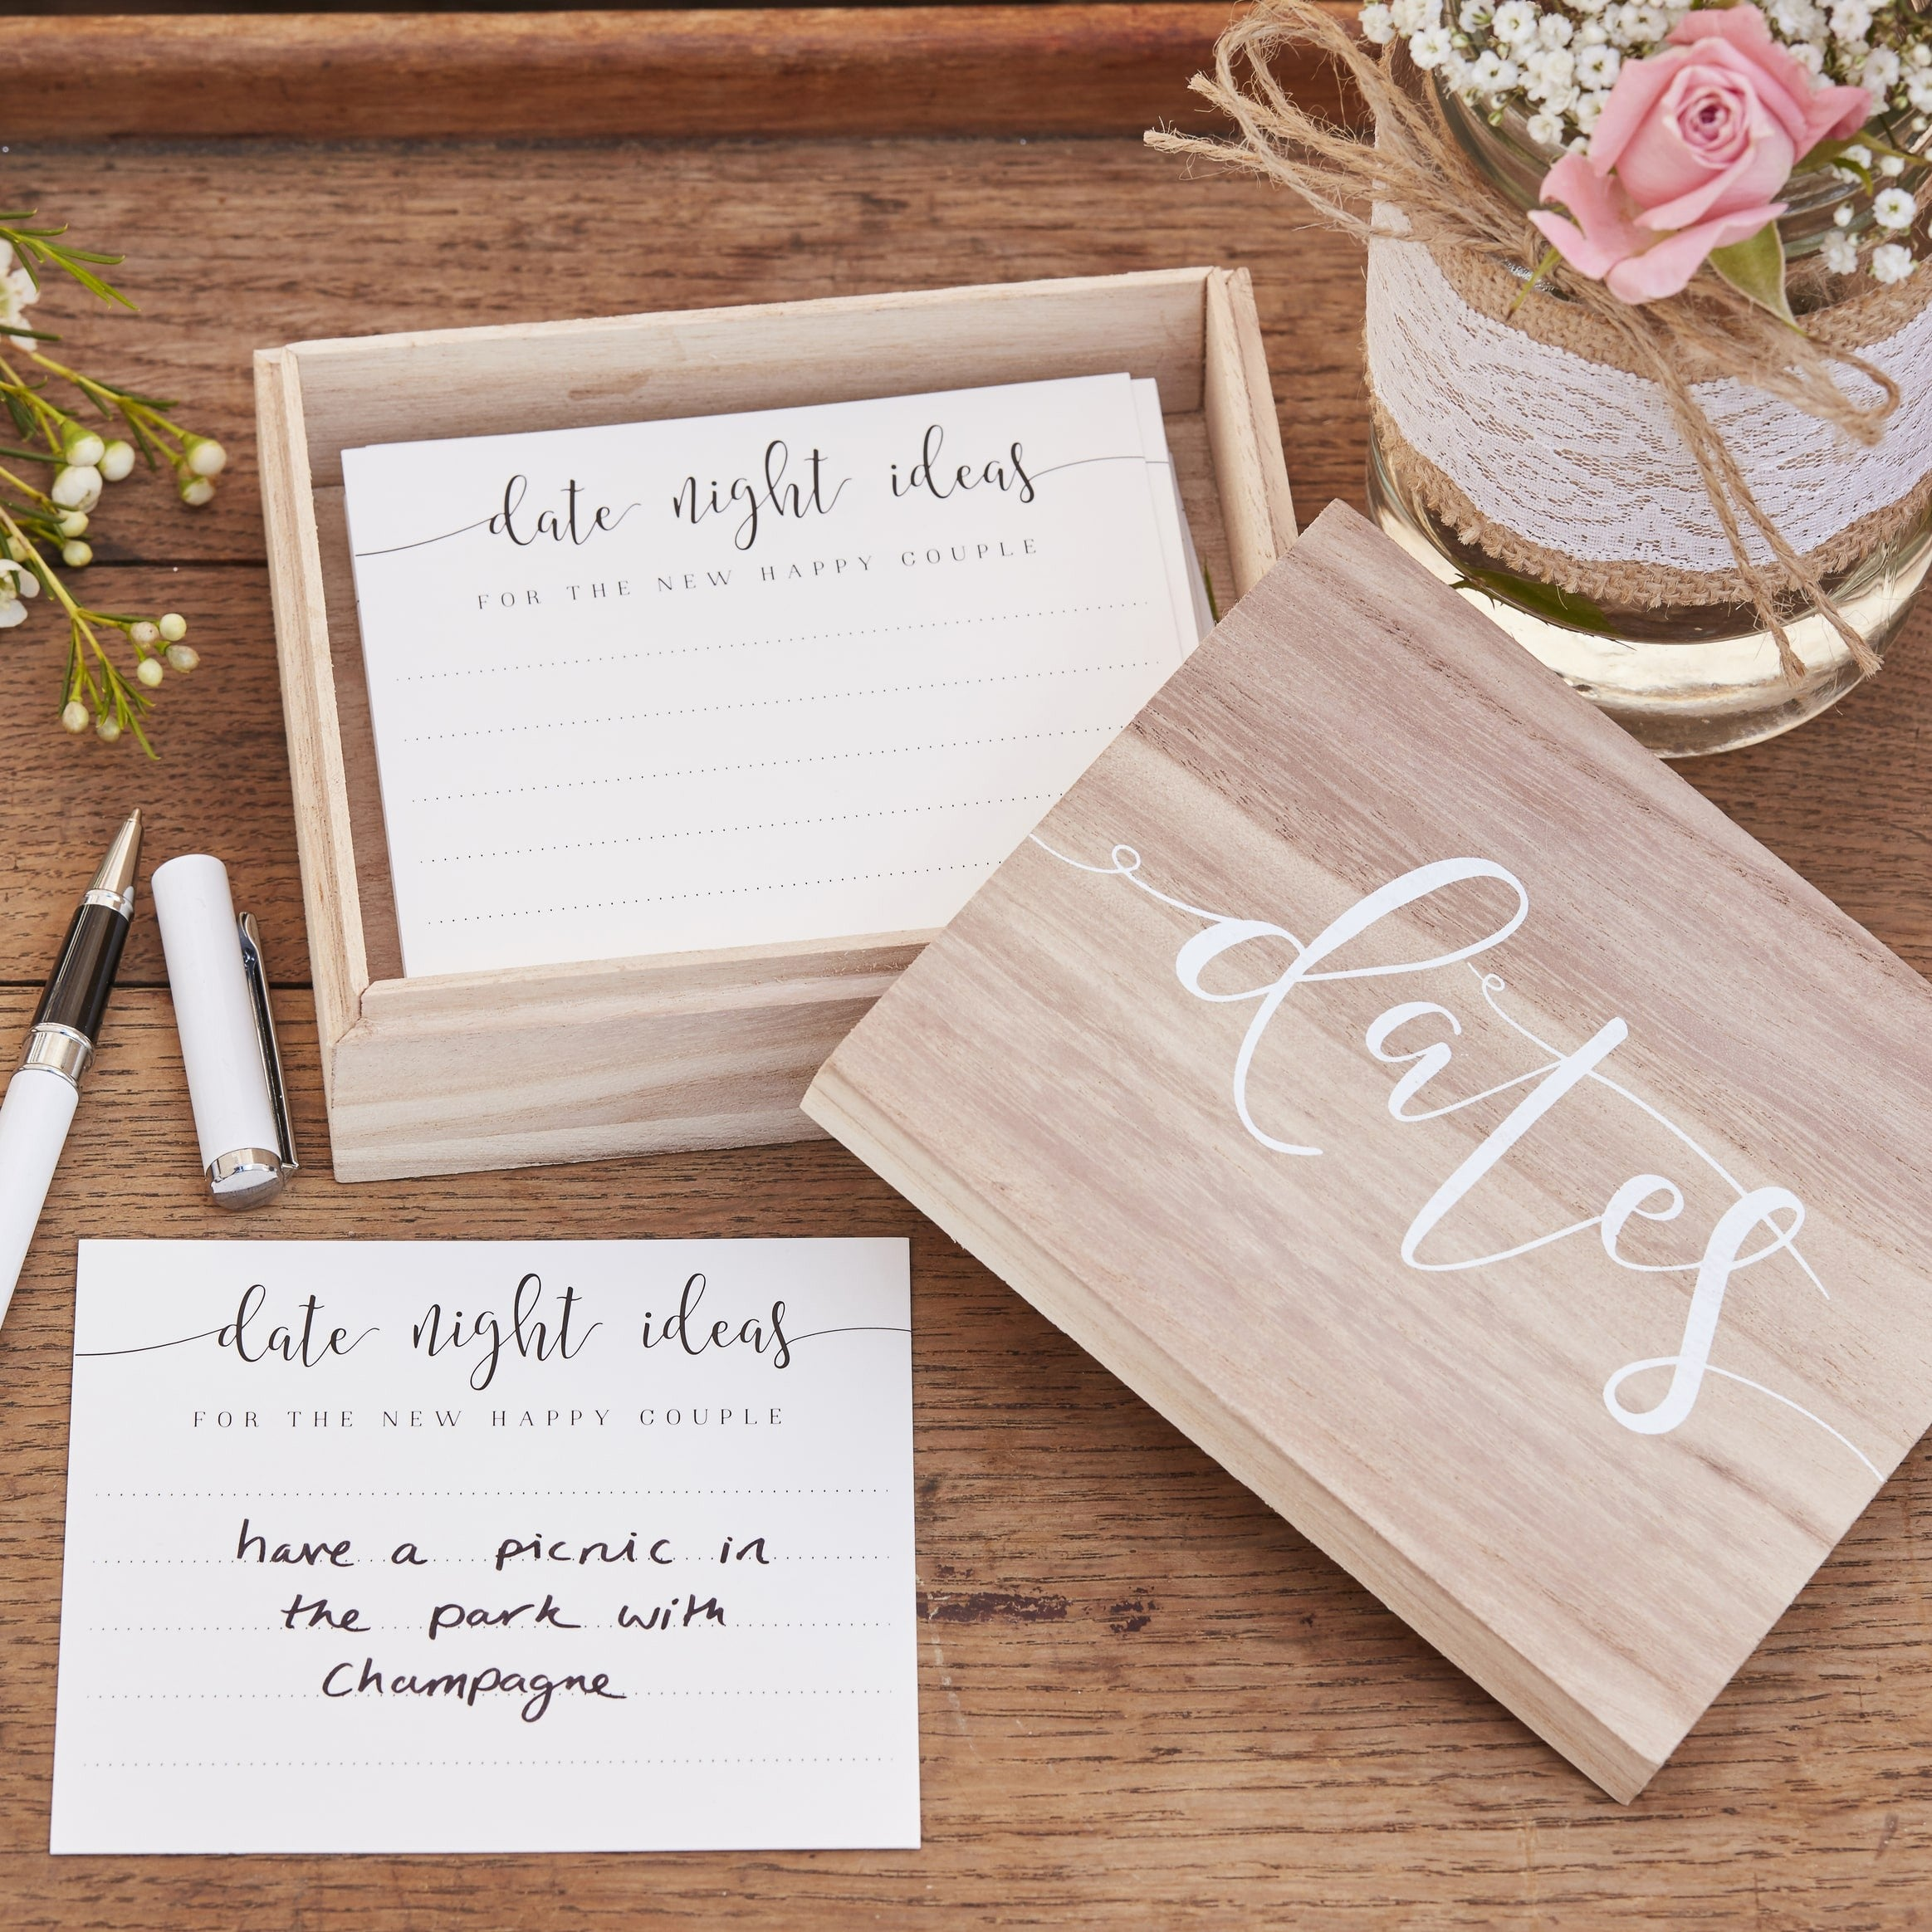 Alternative Wedding Guest Book Ideas: Date Night Ideas Alternative Wedding Guest Book